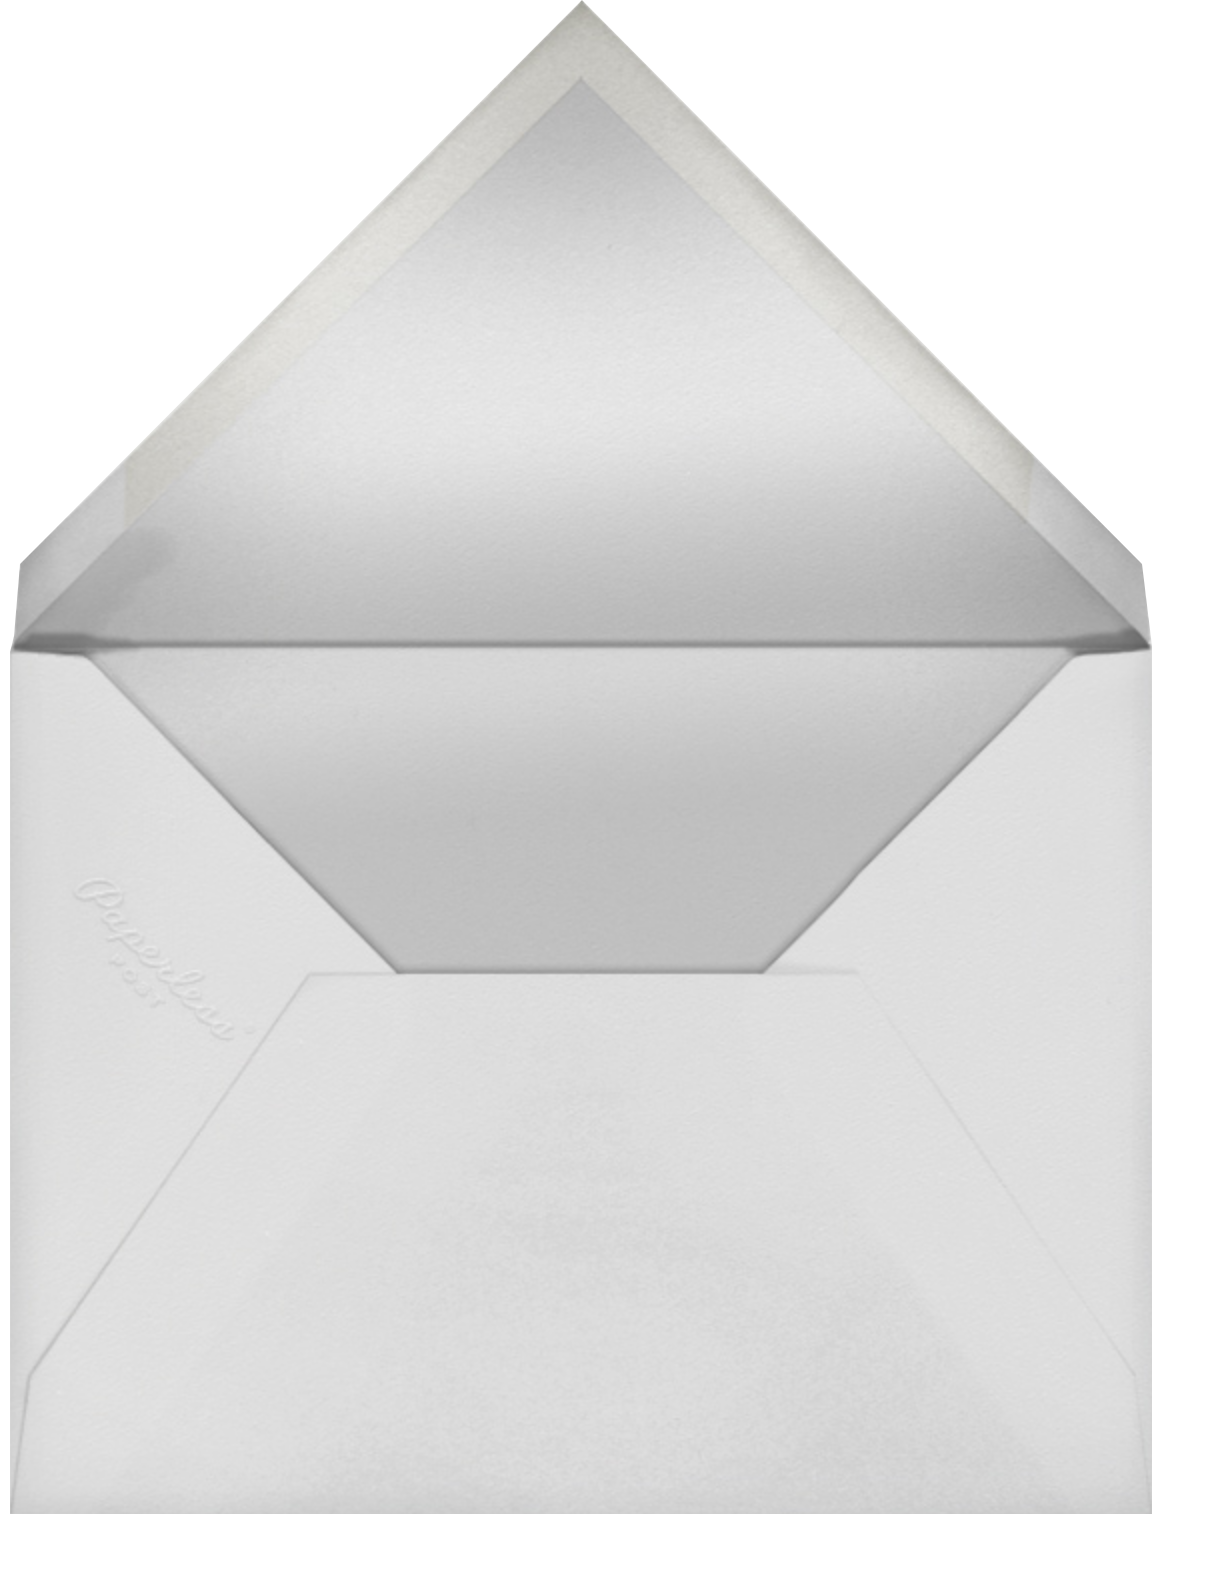 Division - Paperless Post - Cocktail party - envelope back